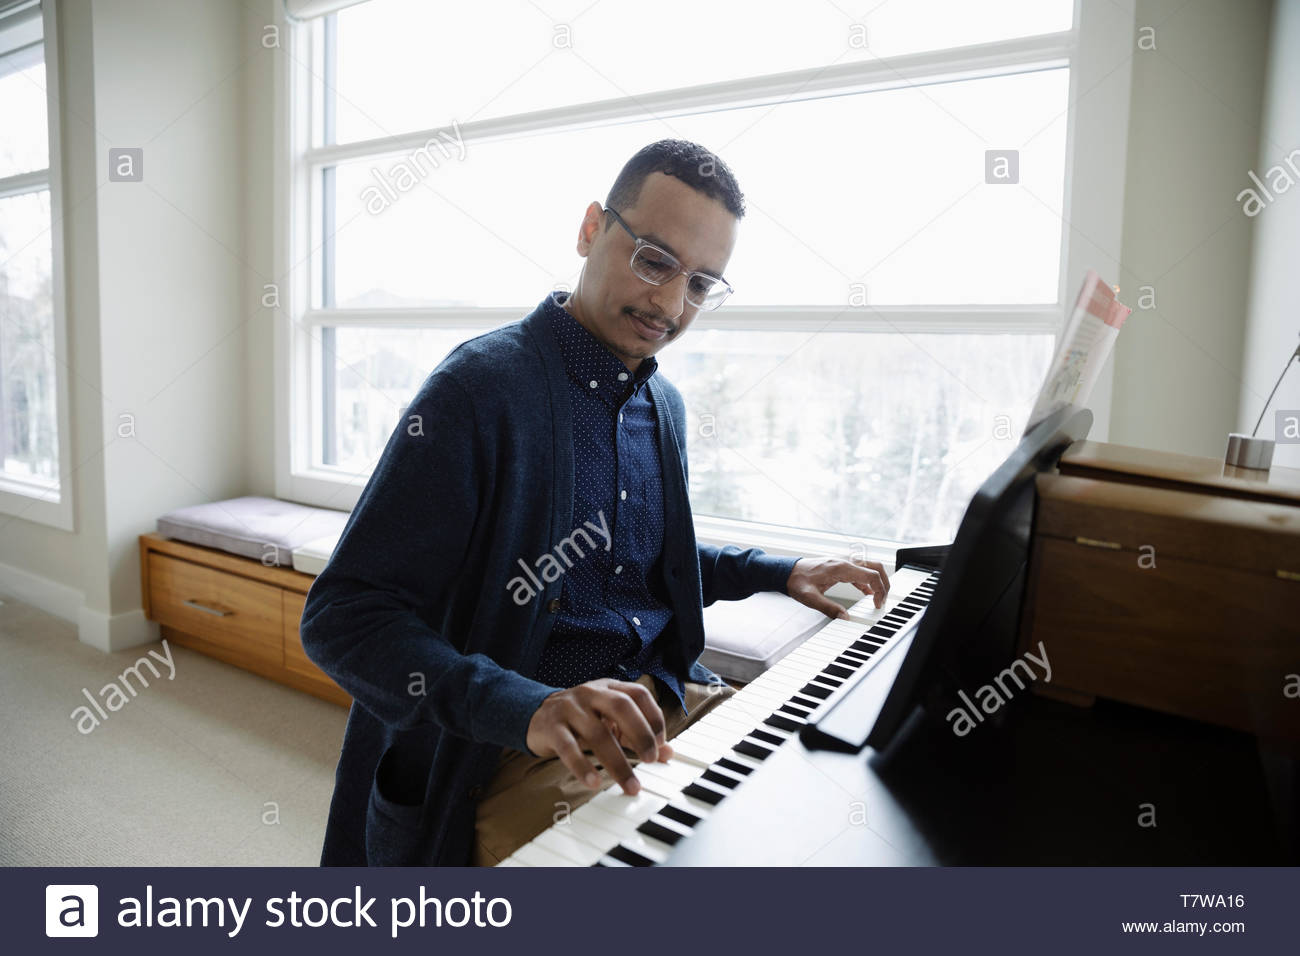 L'homme jouant du piano à la maison Photo Stock